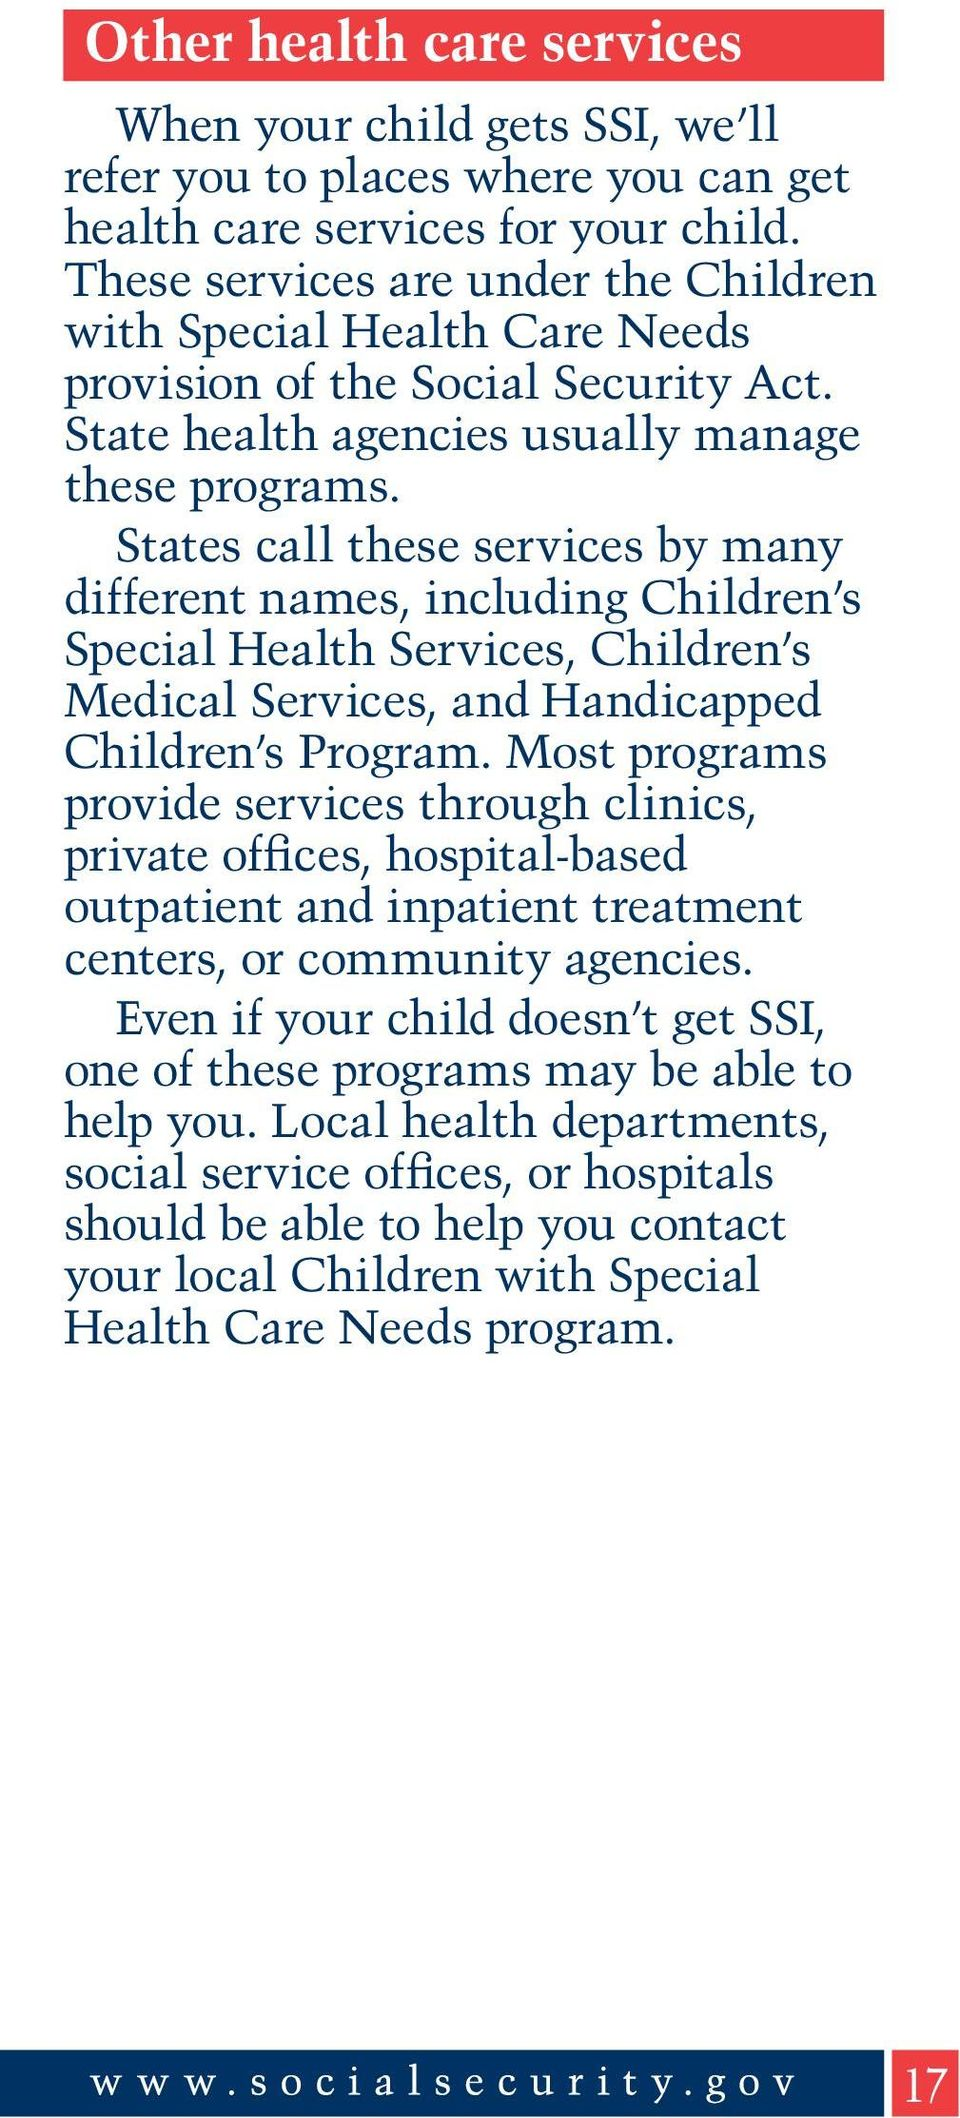 States call these services by many different names, including Children s Special Health Services, Children s Medical Services, and Handicapped Children s Program.